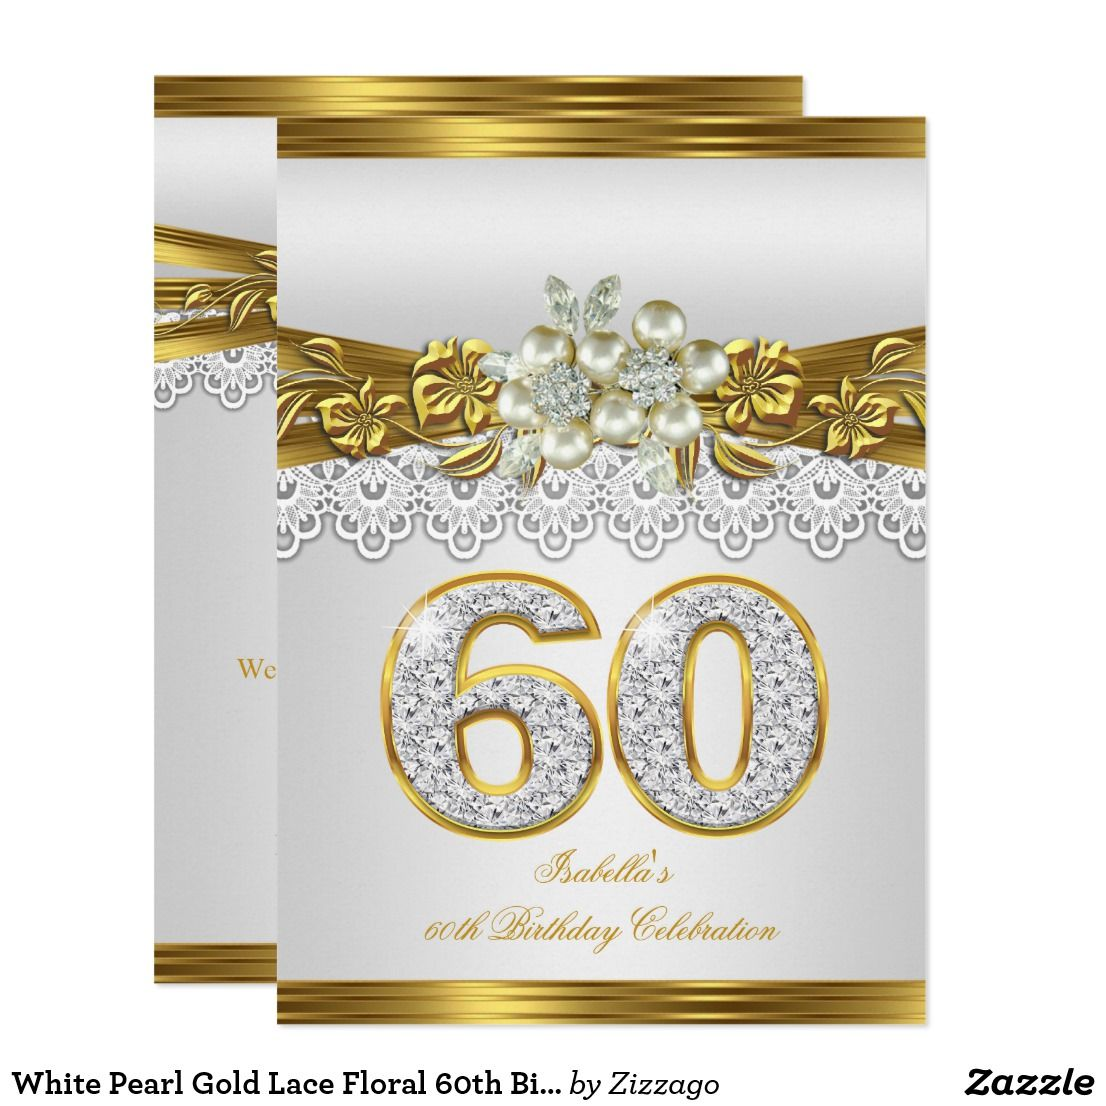 White Pearl Gold Lace Floral 60th Birthday Party Invitation in 2018 ...